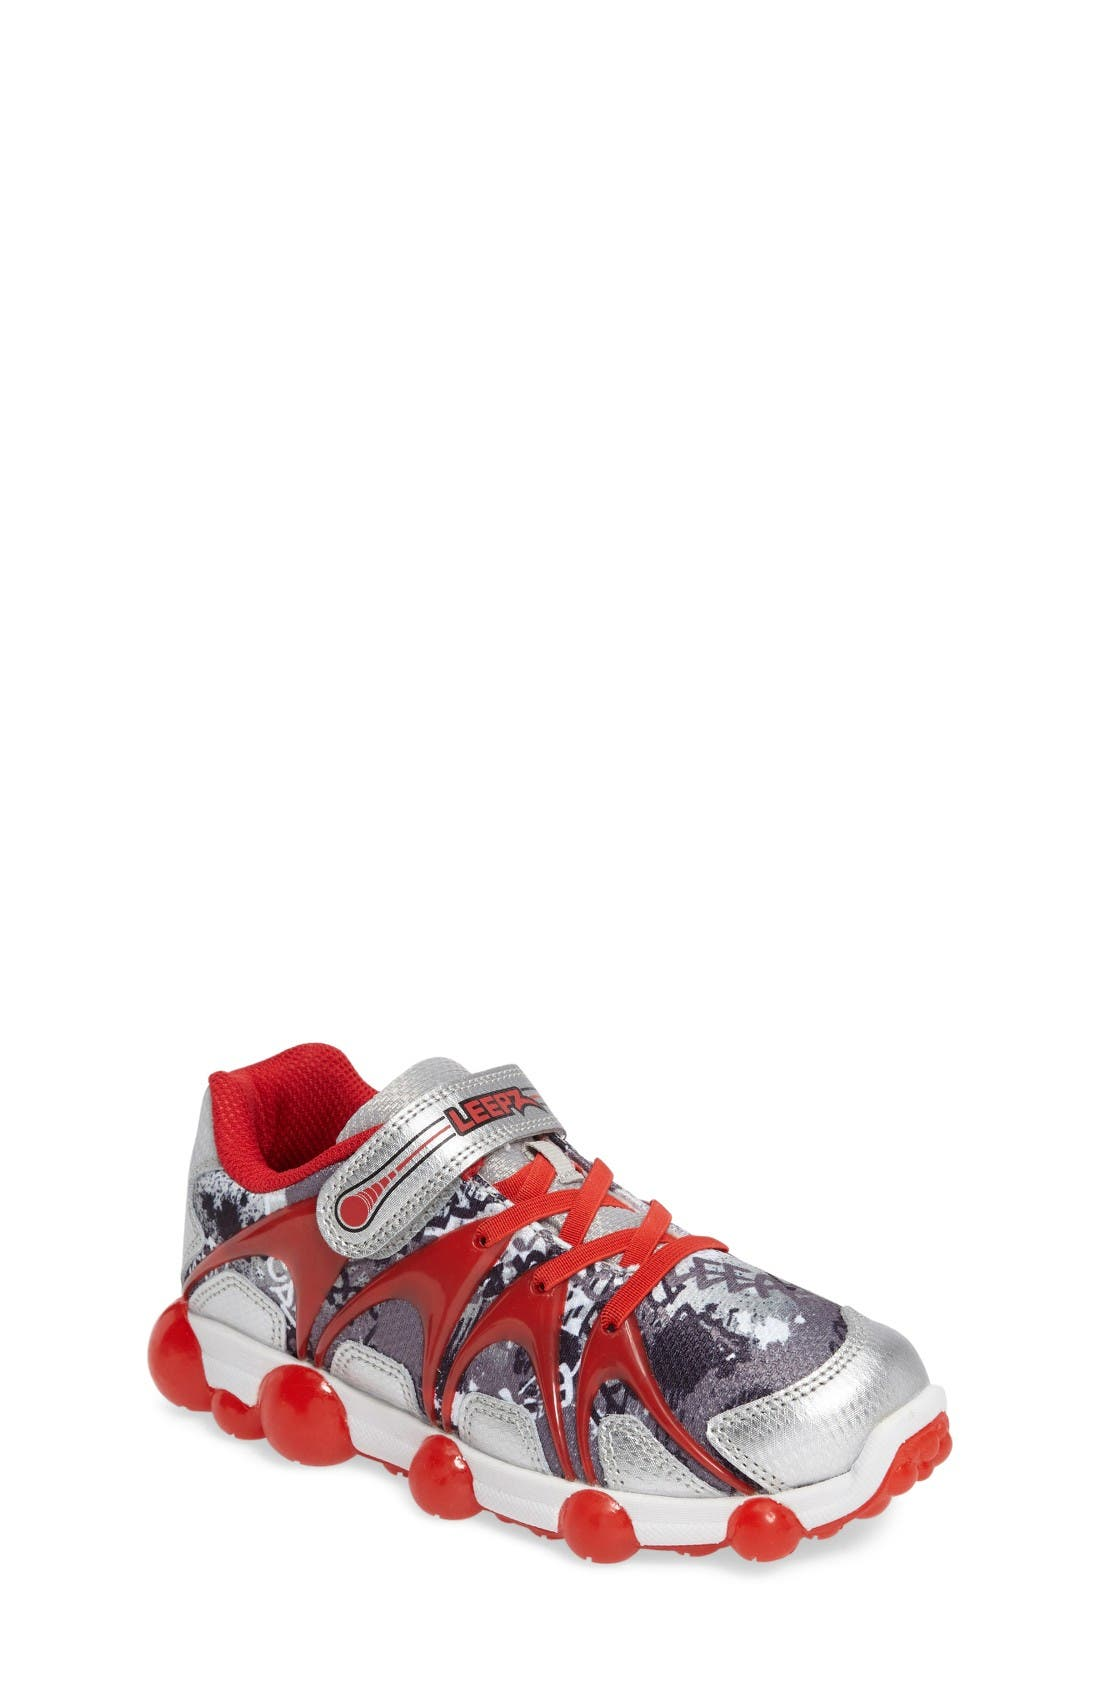 Stride Rite 'Leepz' Light-Up Sneaker (Walker, Toddler & Little Kid)